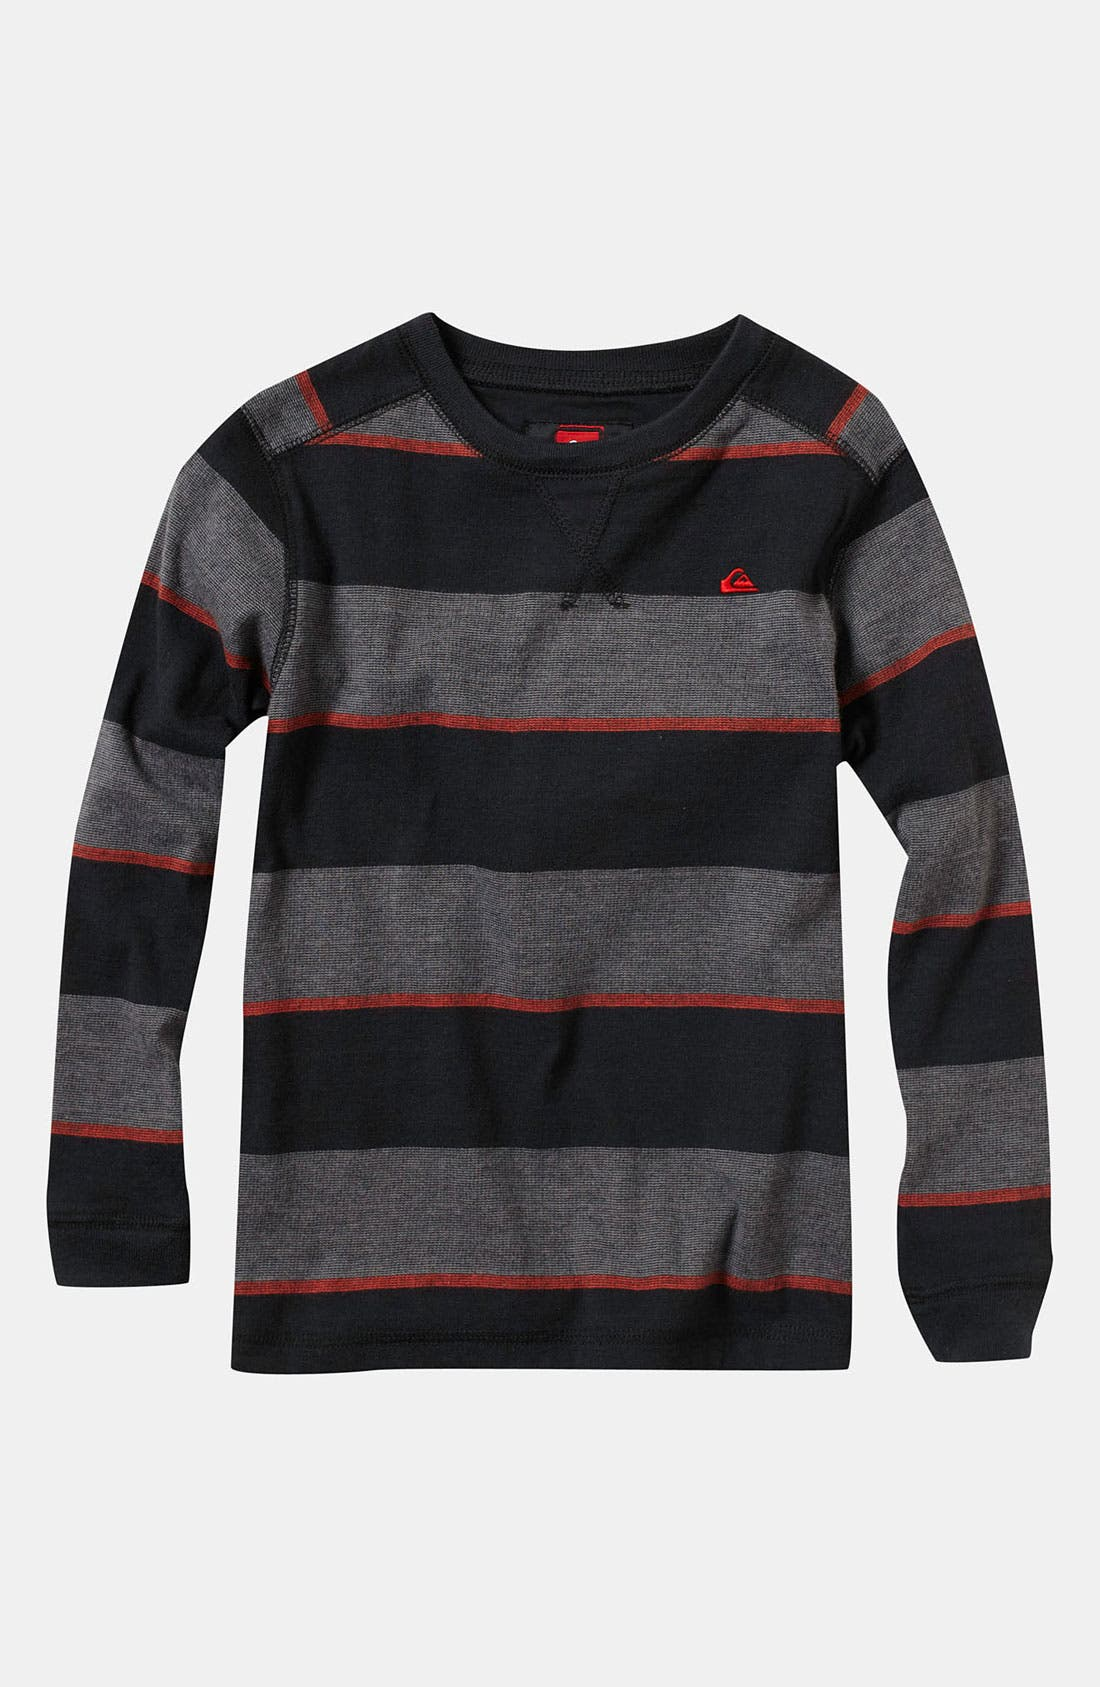 Main Image - Quiksilver 'Snit' Stripe Top (Infant)